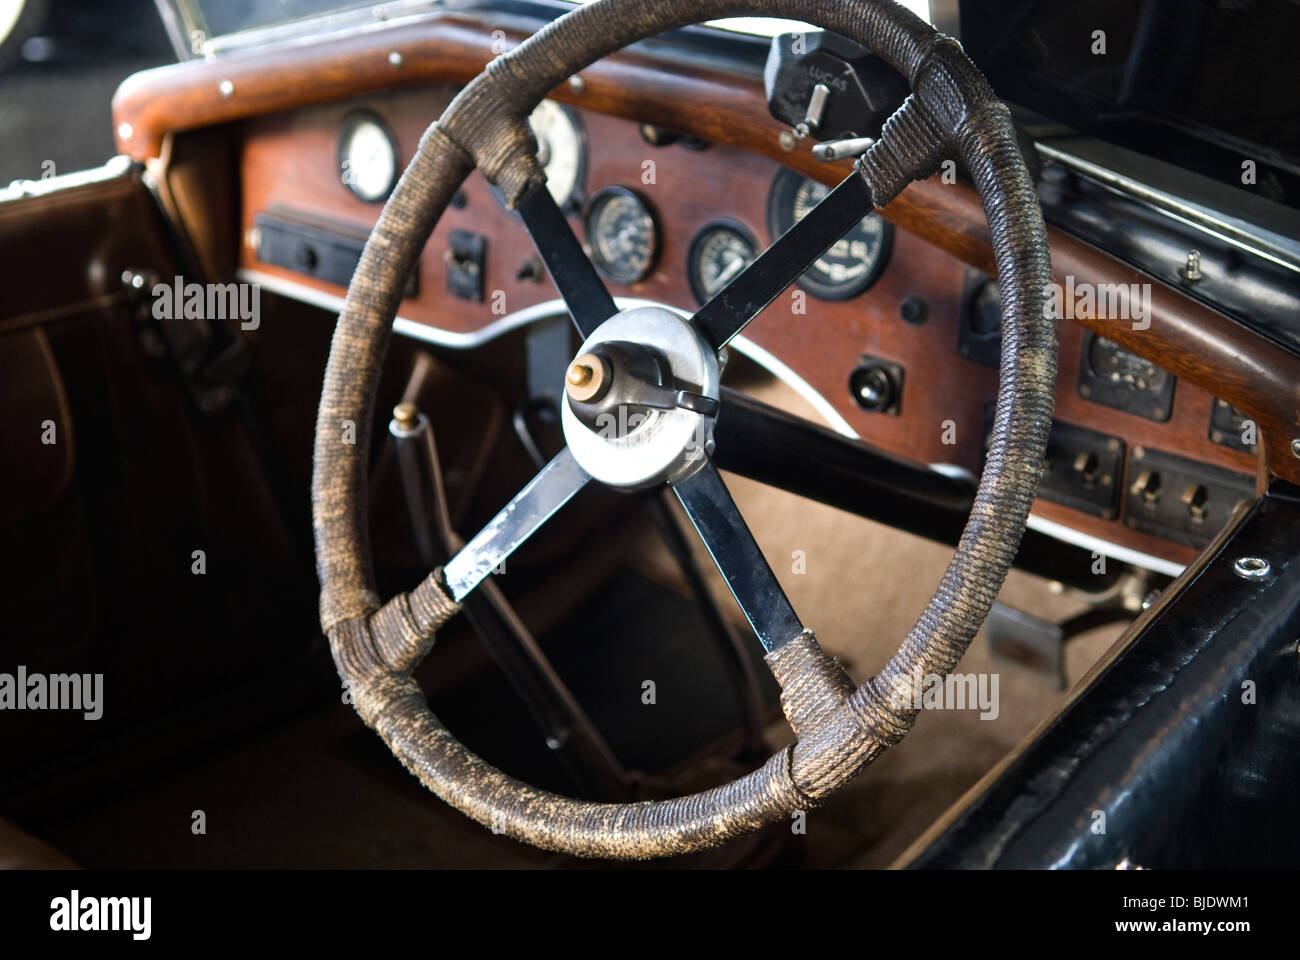 A Steering Wheel Of An Old Classic Car Wooden Dashboard Stock Photo